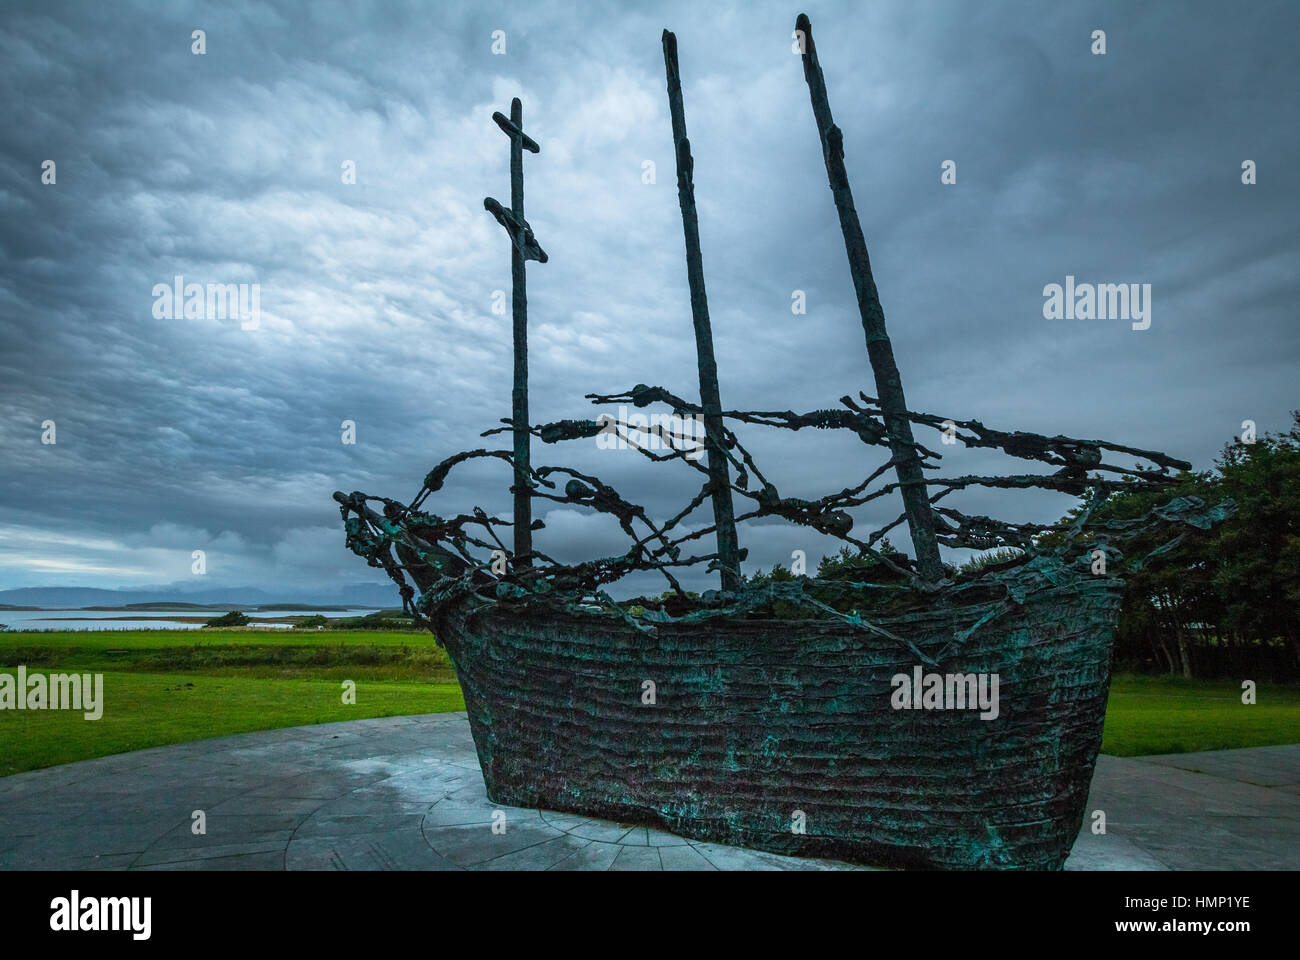 National famine memorial depicting a coffin ship at Murrisk, County Mayo, Ireland Stock Photo